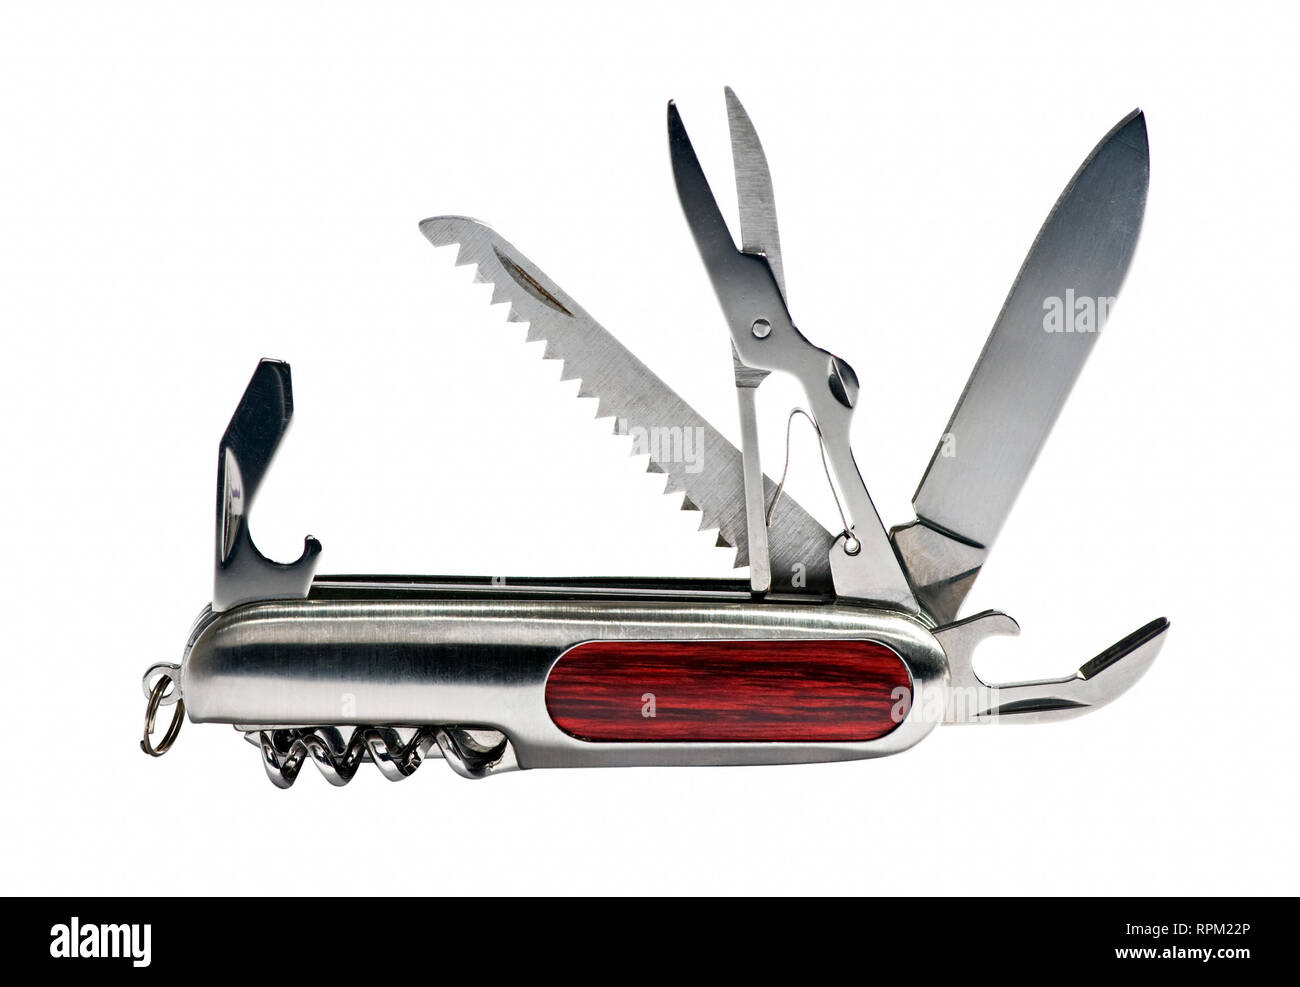 Multipurpose vintage pocket knife with all tools shown, viewed from its side and isolated on white background - Stock Image